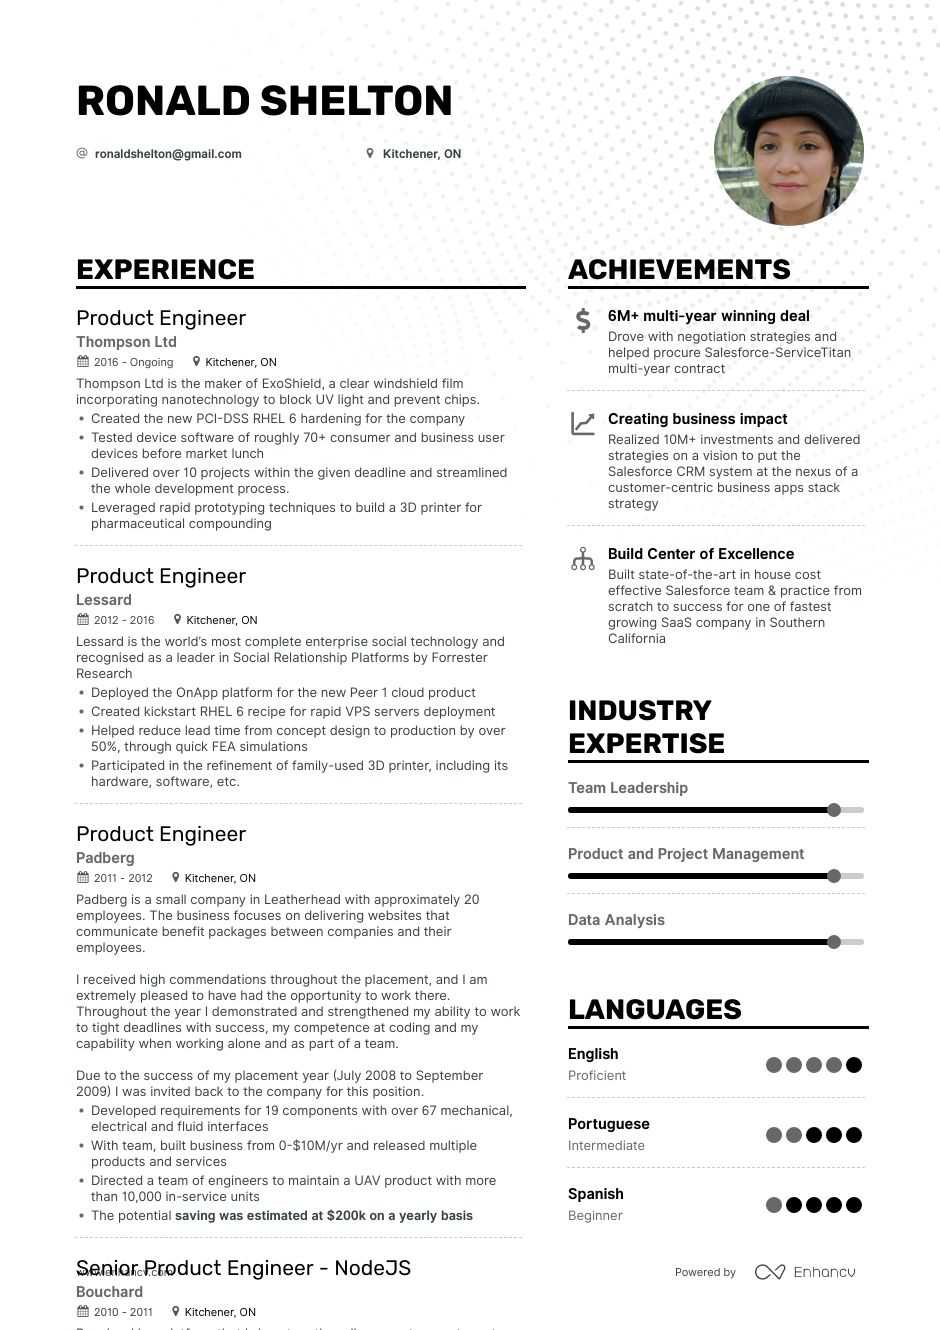 top product engineer resume examples samples for enhancv customer centric best template Resume Customer Centric Resume